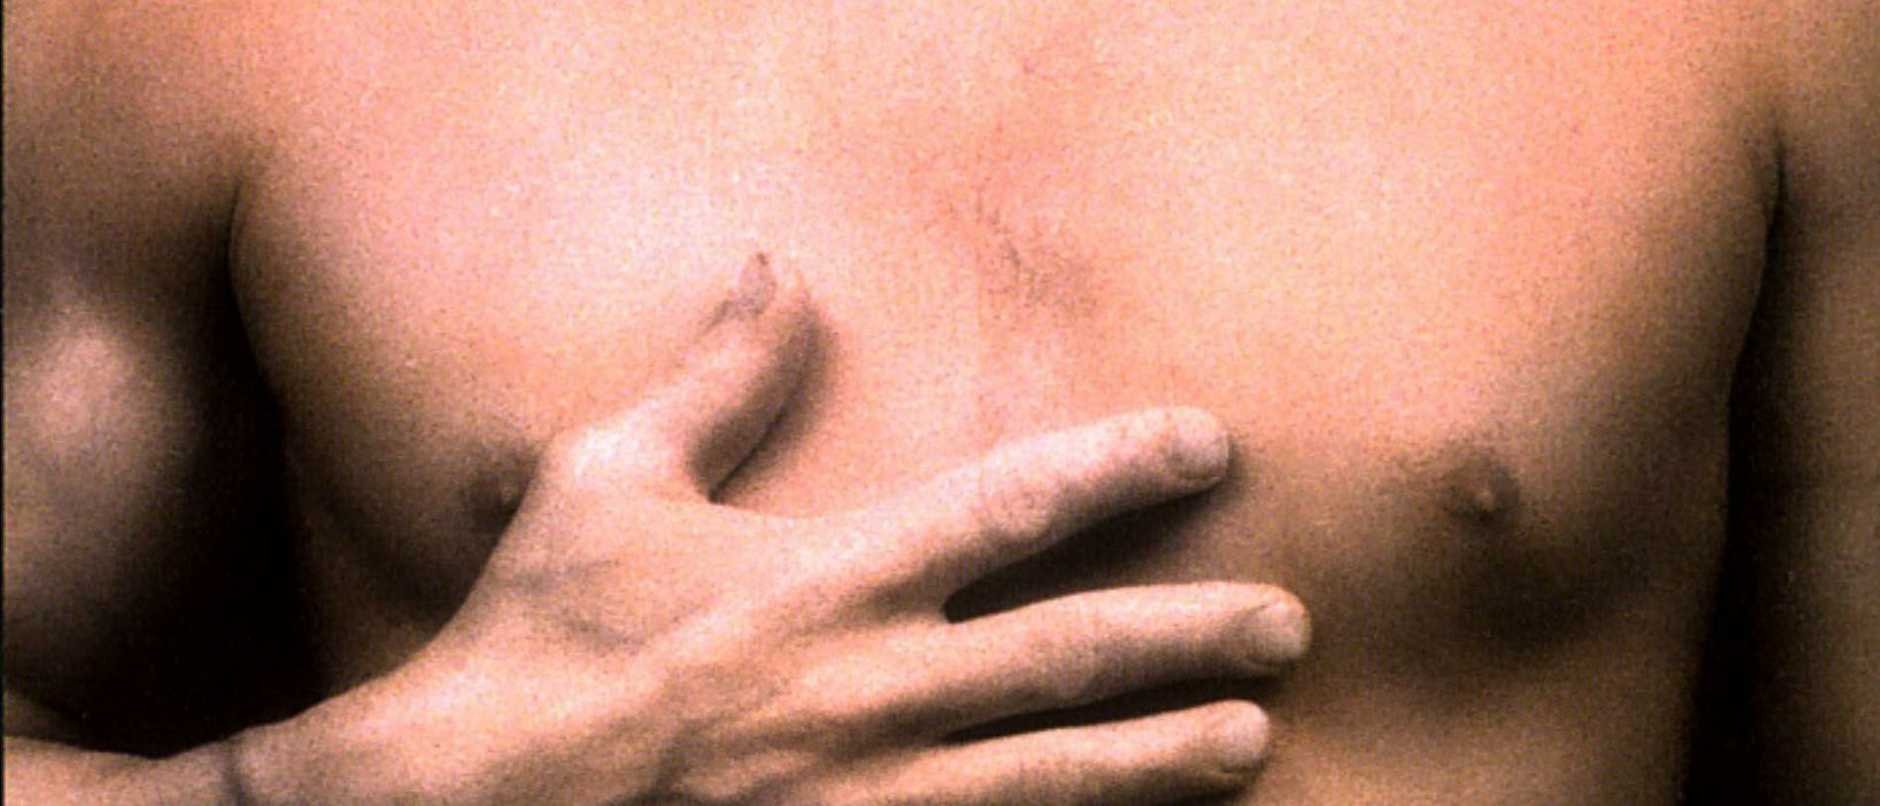 Hand on chest of man. generic bare chested hands nudity